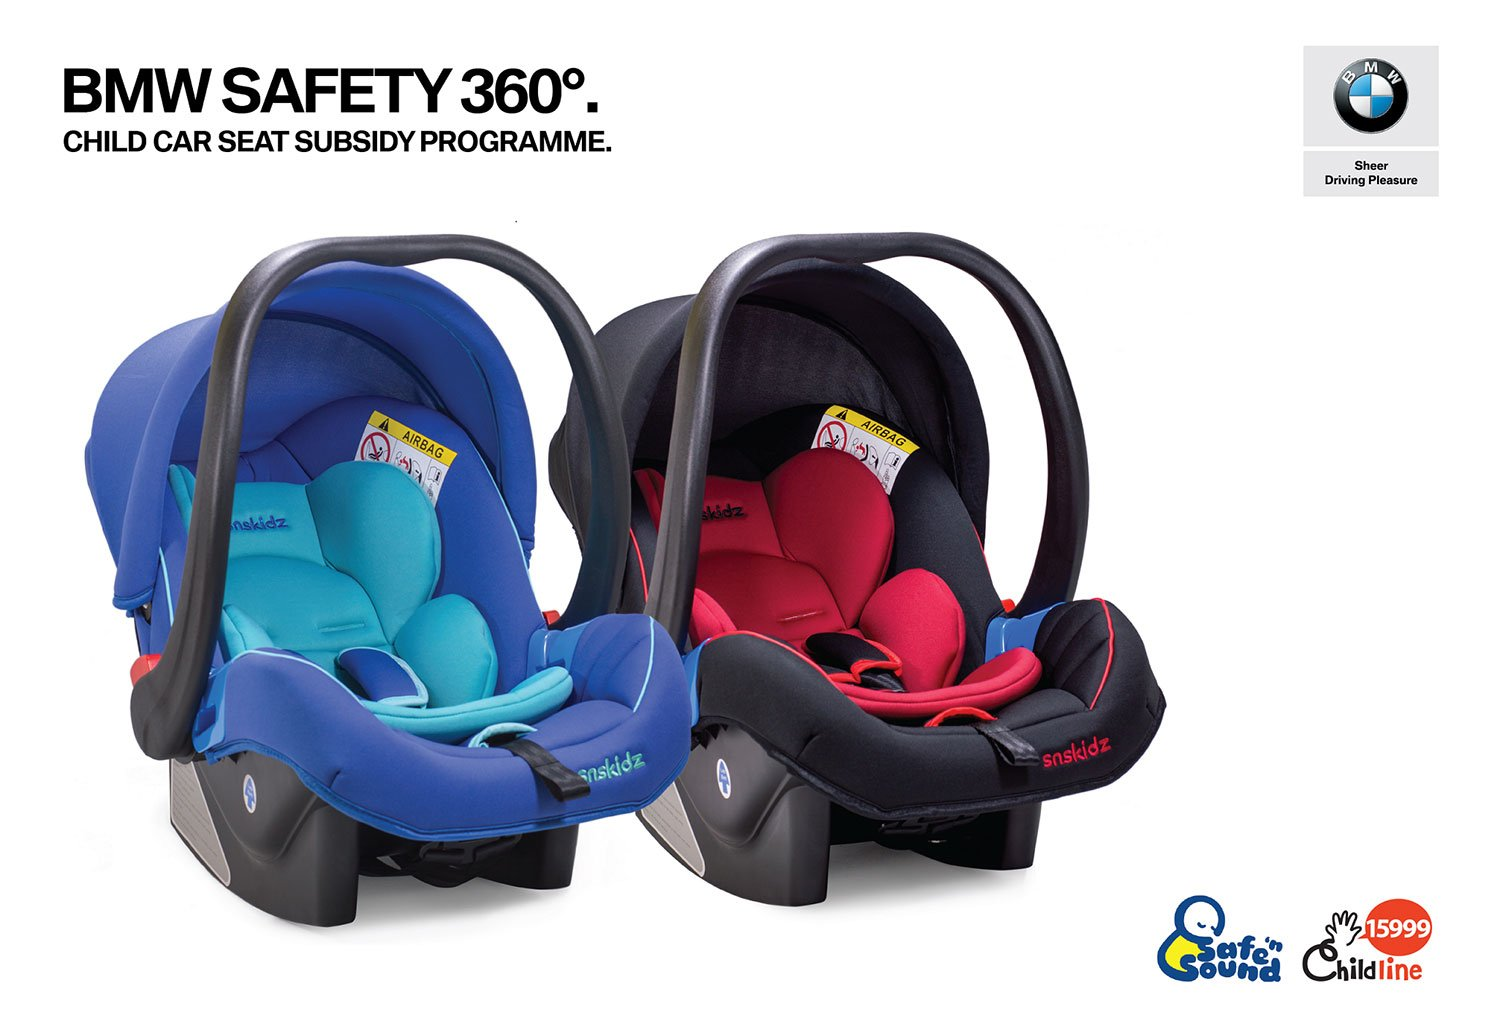 BMW Malaysia, Safe 'n Sound and Childline Foundation Open Registration for Subsidised Infant Carrier Car Seats.